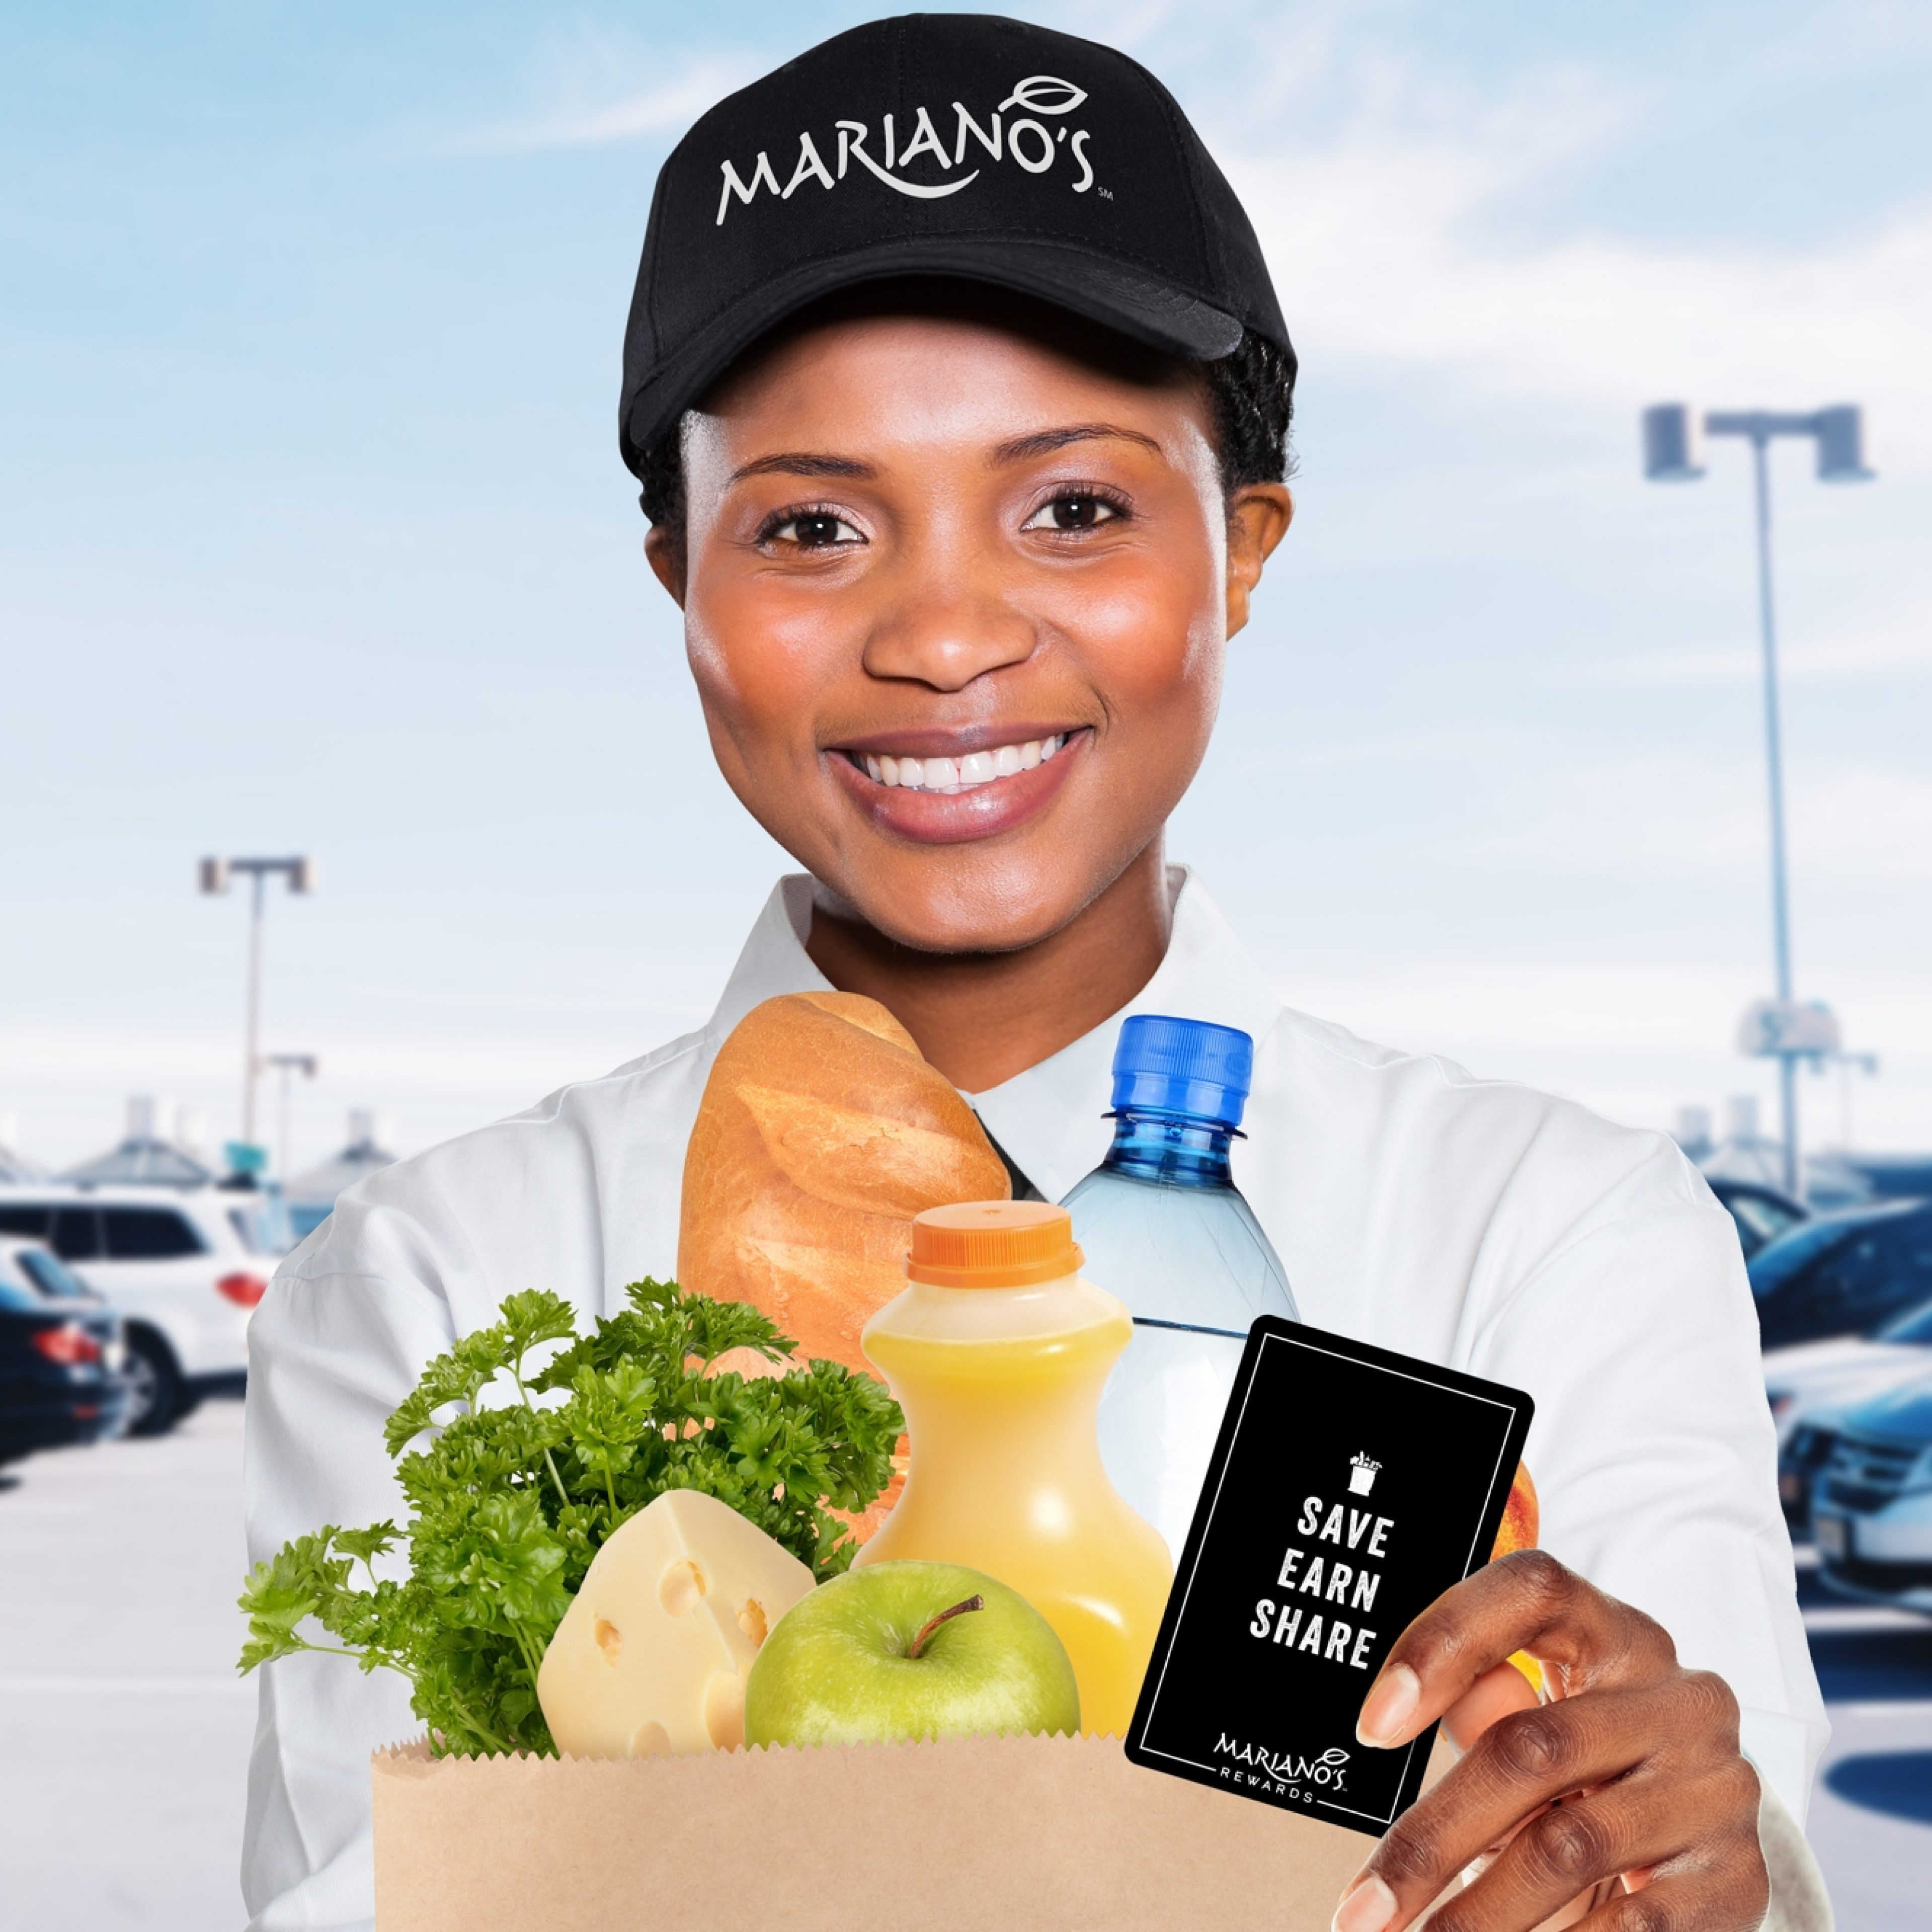 Mariano's worker holding a Save Earn Share card